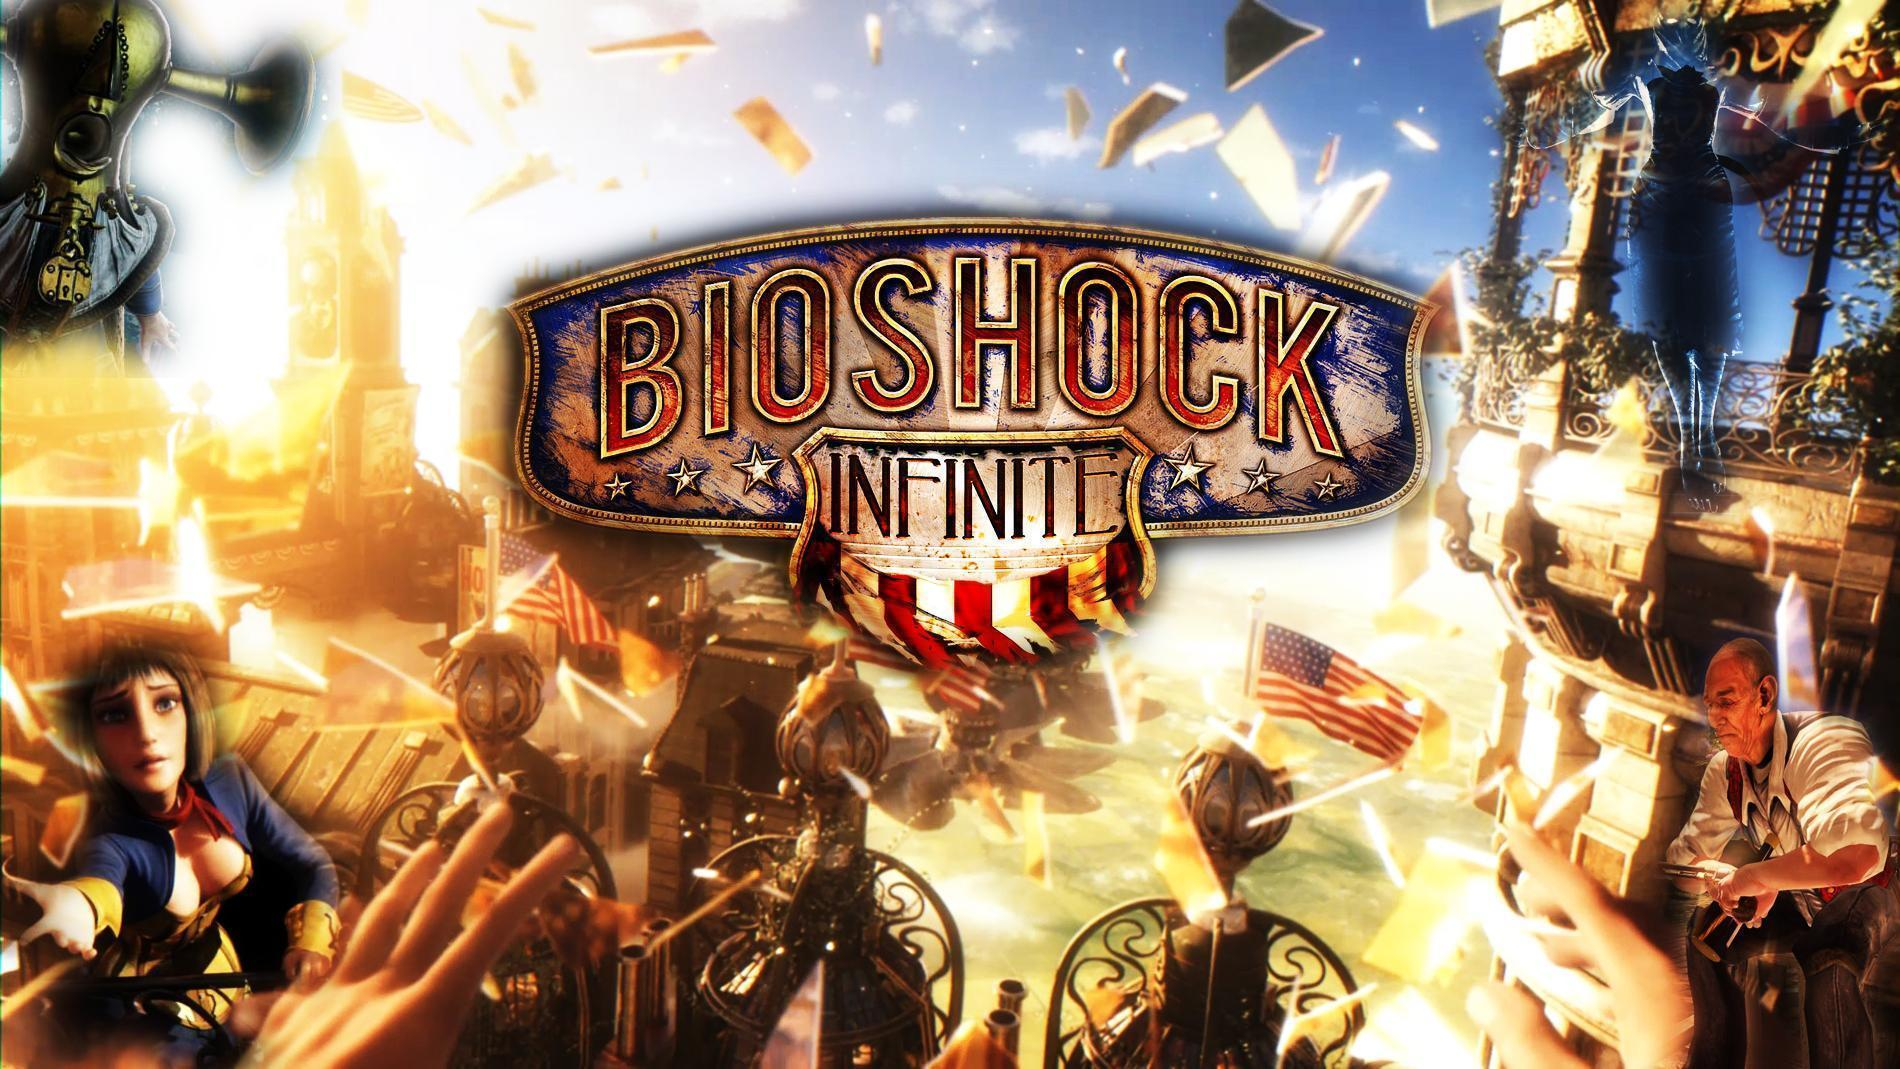 Bioshock Infinite Wallpapers High Definition 3709 Wallpapers